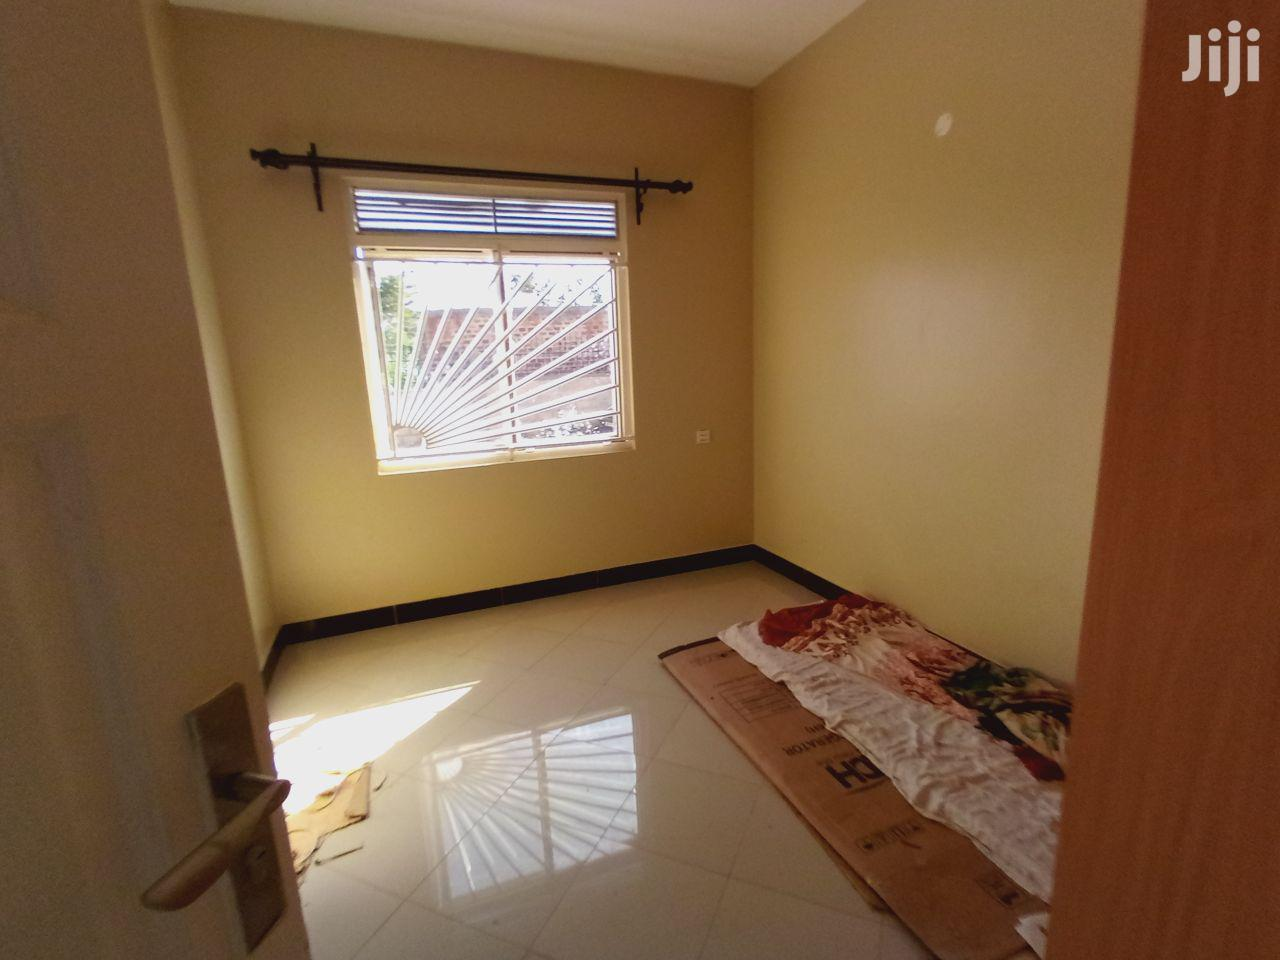 Kisasi One Bedroom House For Rent | Houses & Apartments For Rent for sale in Kampala, Central Region, Uganda